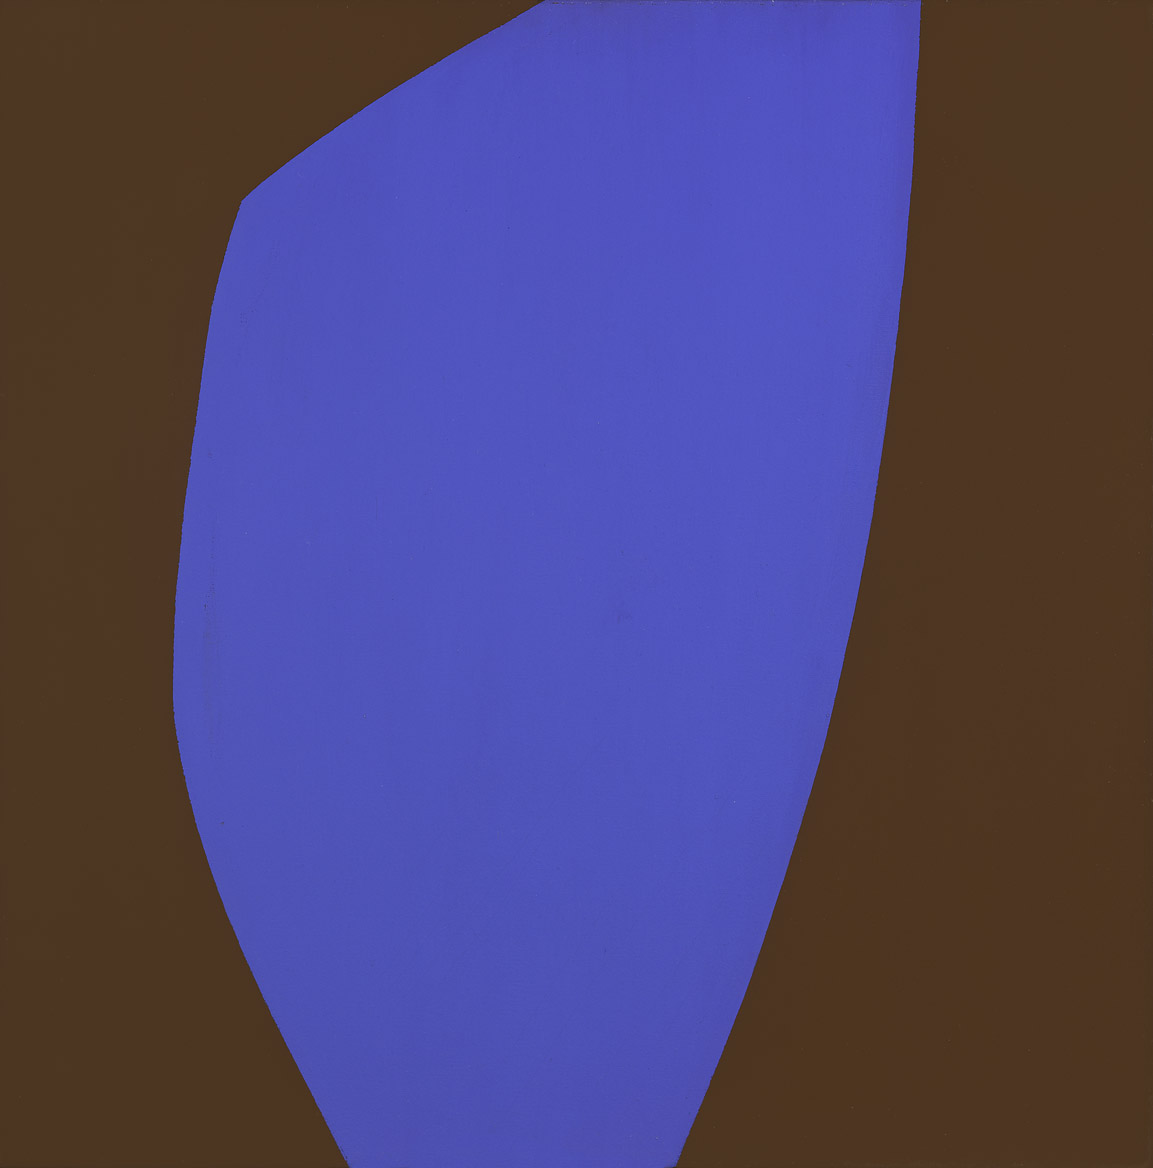 Untitled (Boulder Series) , 1962  Acrylic on canvas 20 x 20 inches; 50.8 x 50.8 centimeters